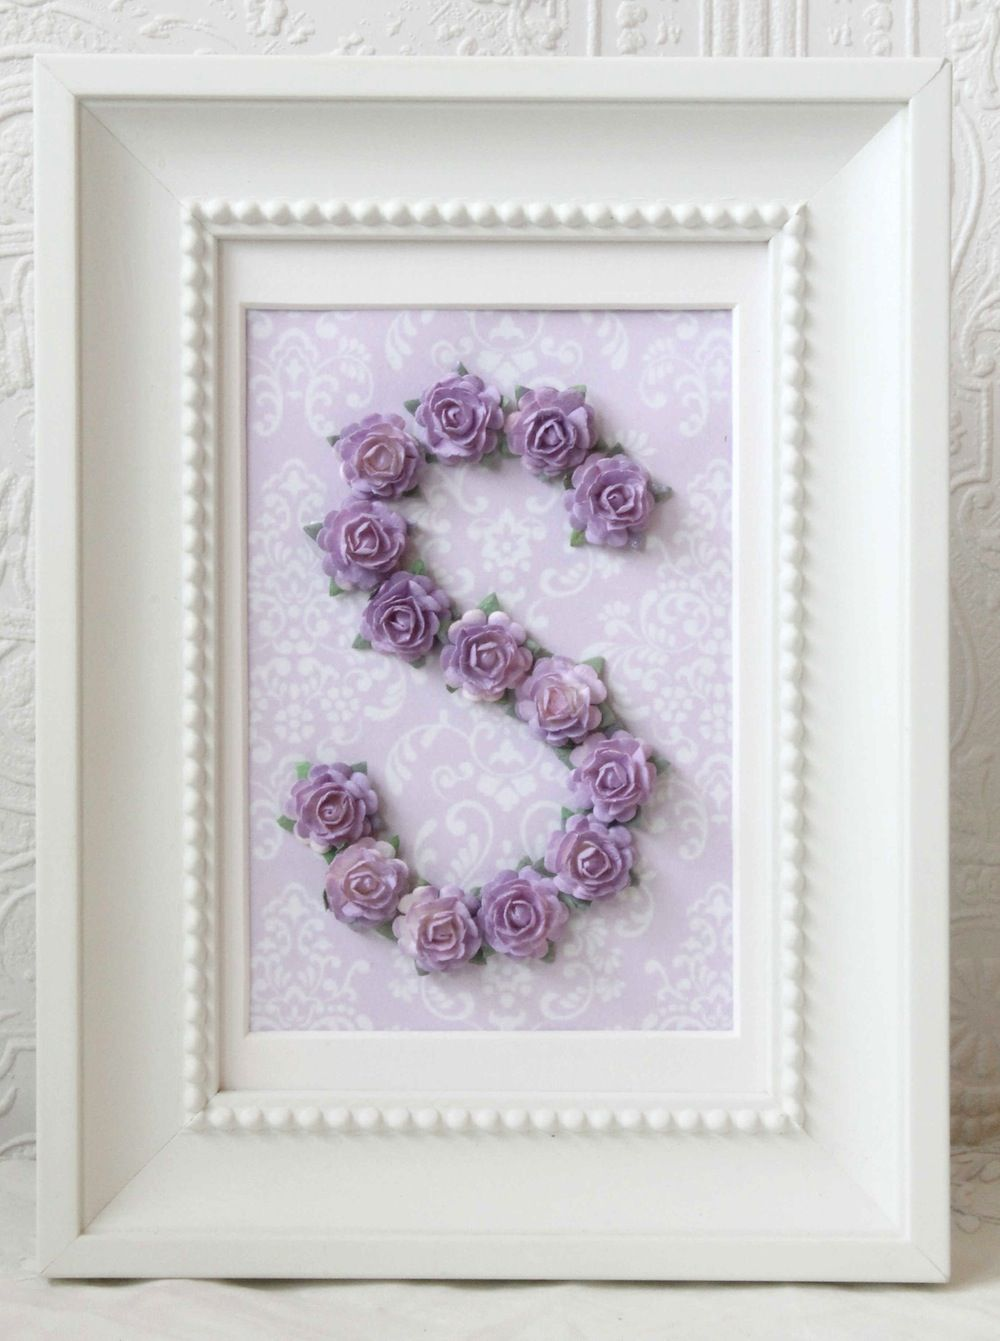 Lavender rose personalized initial frame vintage lighting kids lavender rose personalized initial frame vintage lighting kids lighting nursery chandeliers kids arubaitofo Image collections